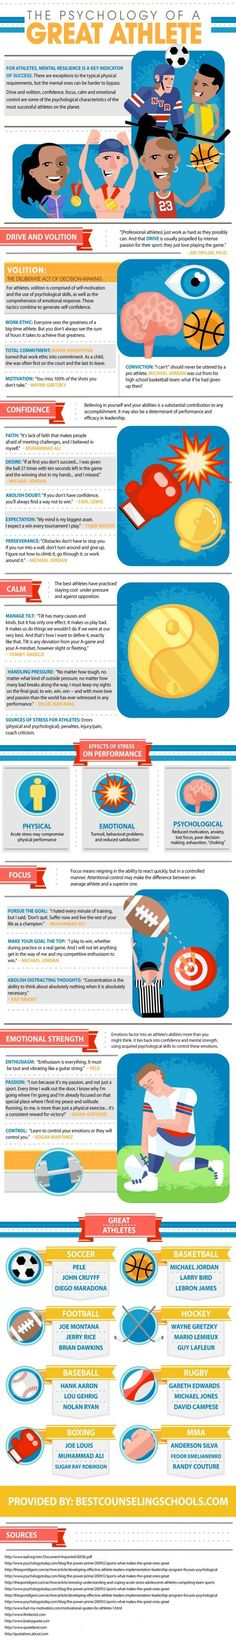 The Sports Psychology Behind Great Athletes, Both Past And Present (INFOGRAPHIC)